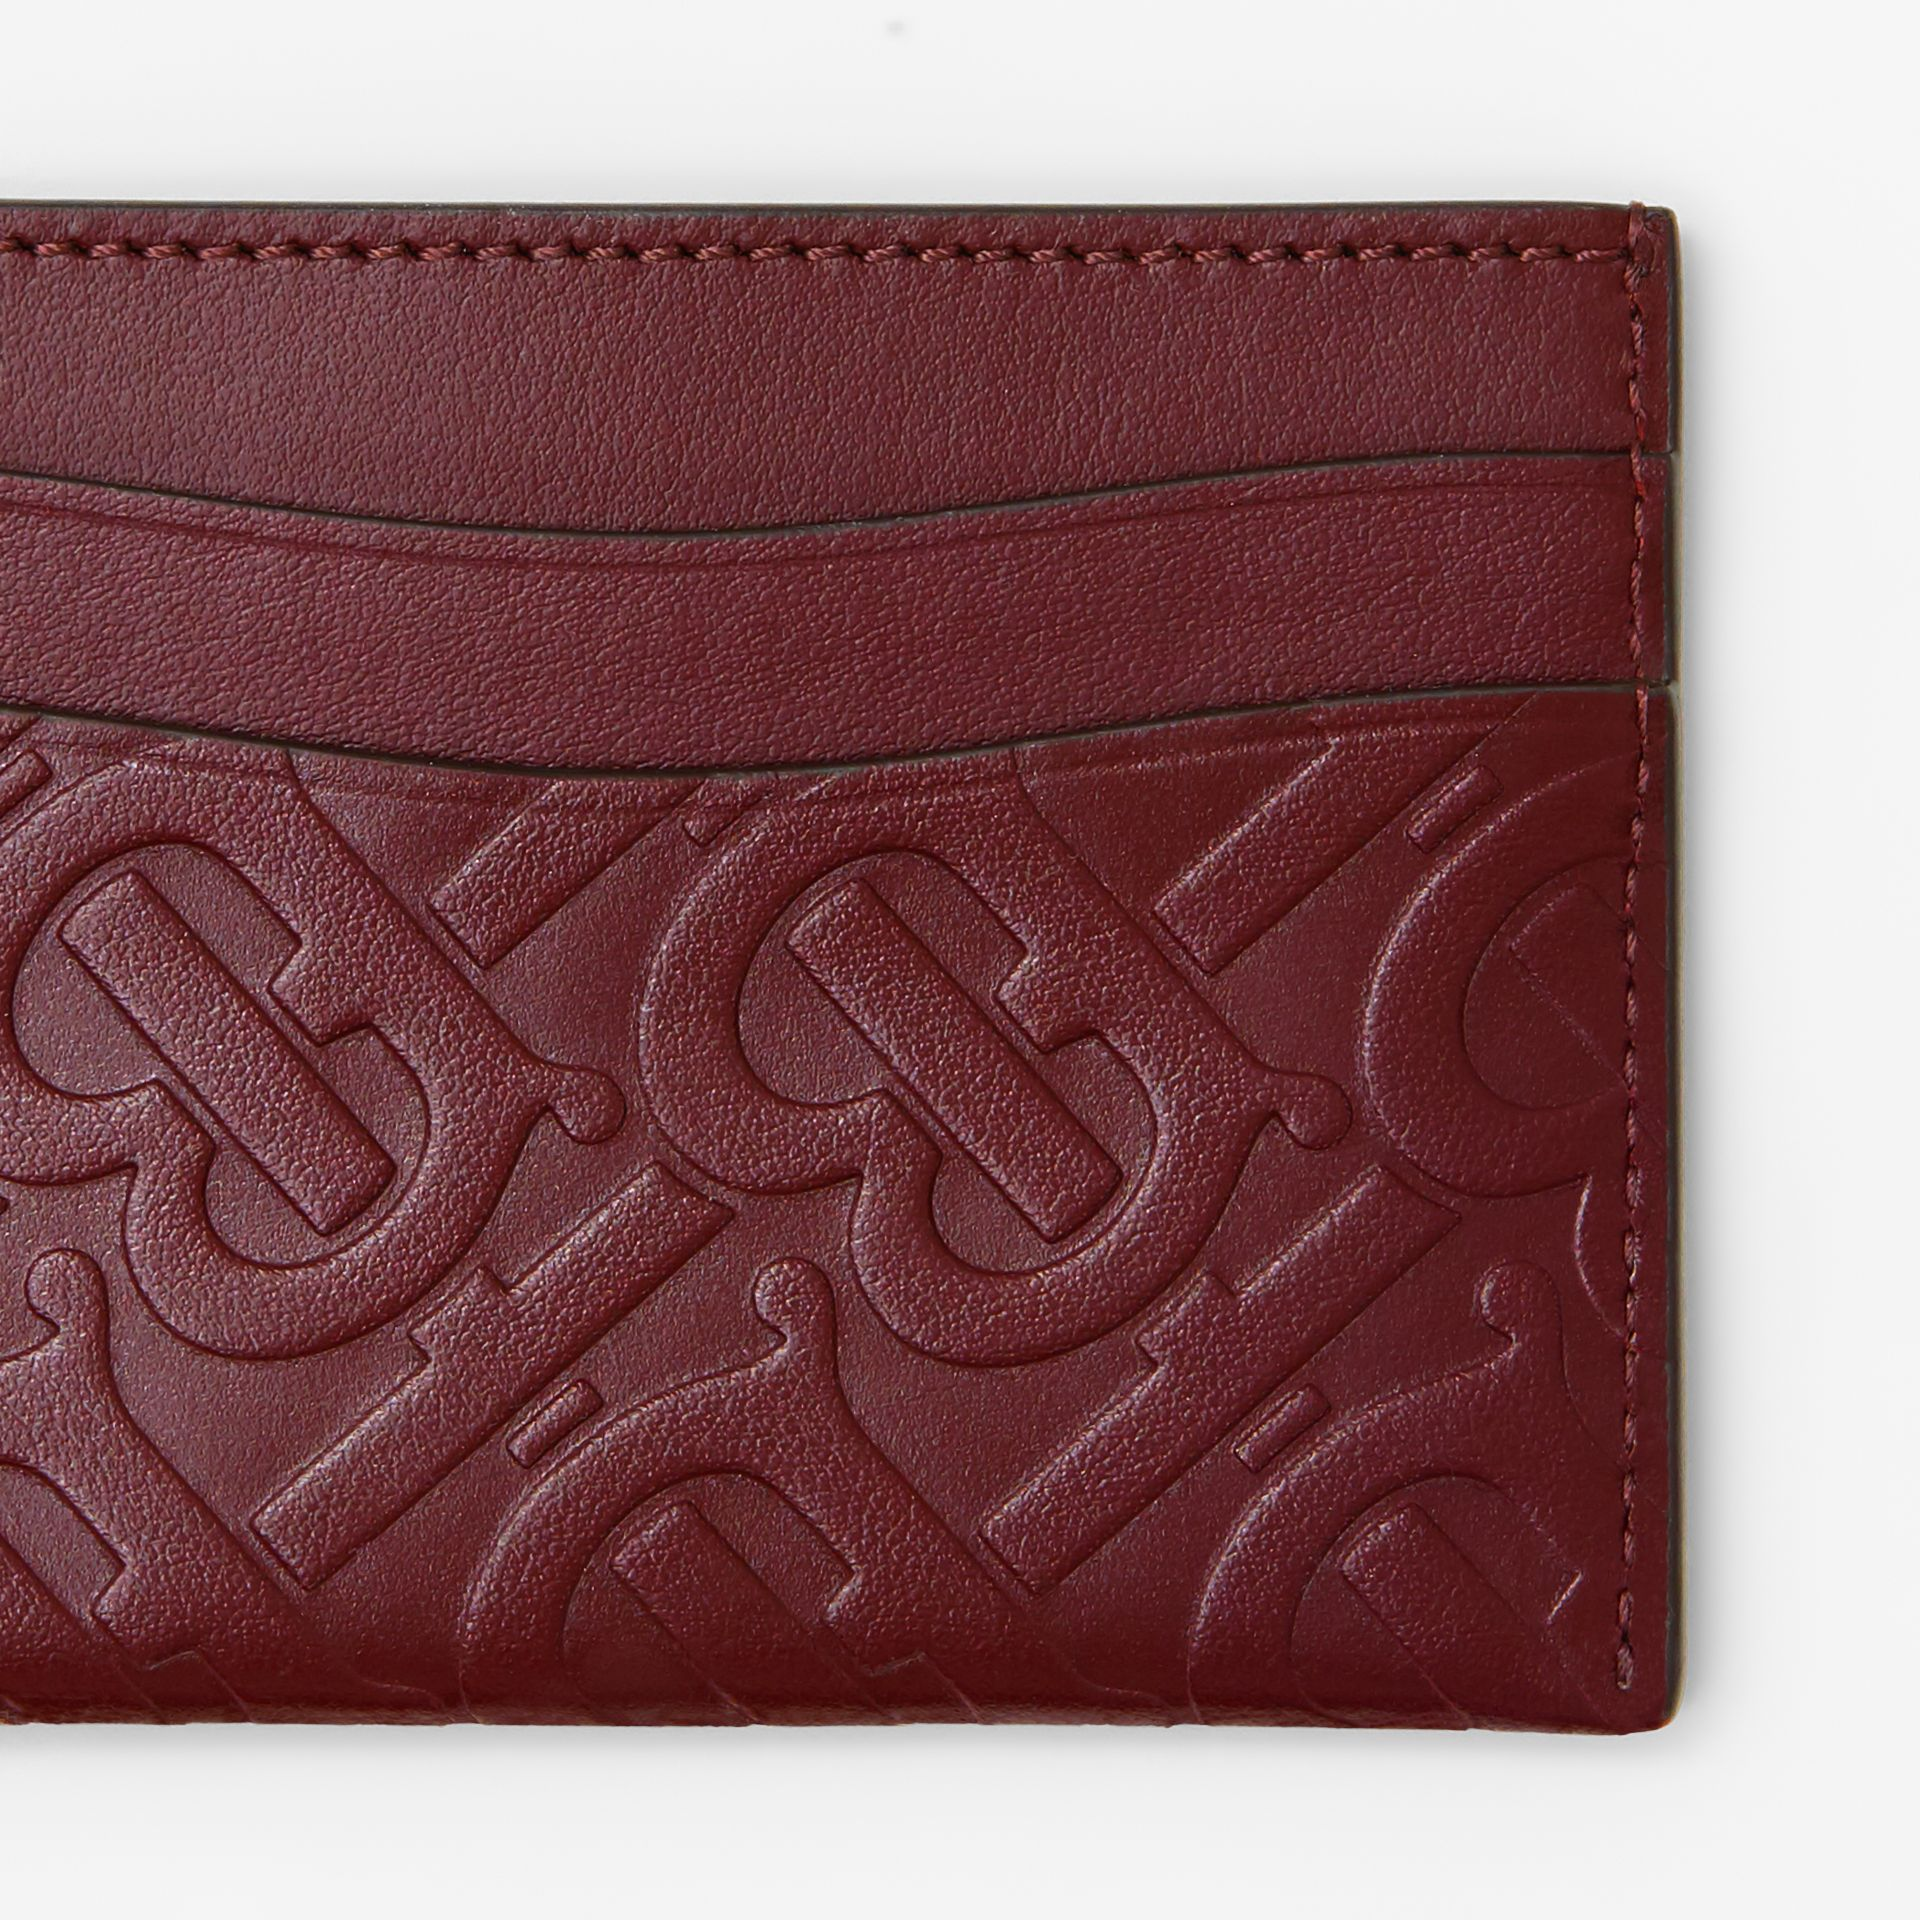 Monogram Leather Card Case in Oxblood - Women | Burberry United Kingdom - gallery image 1